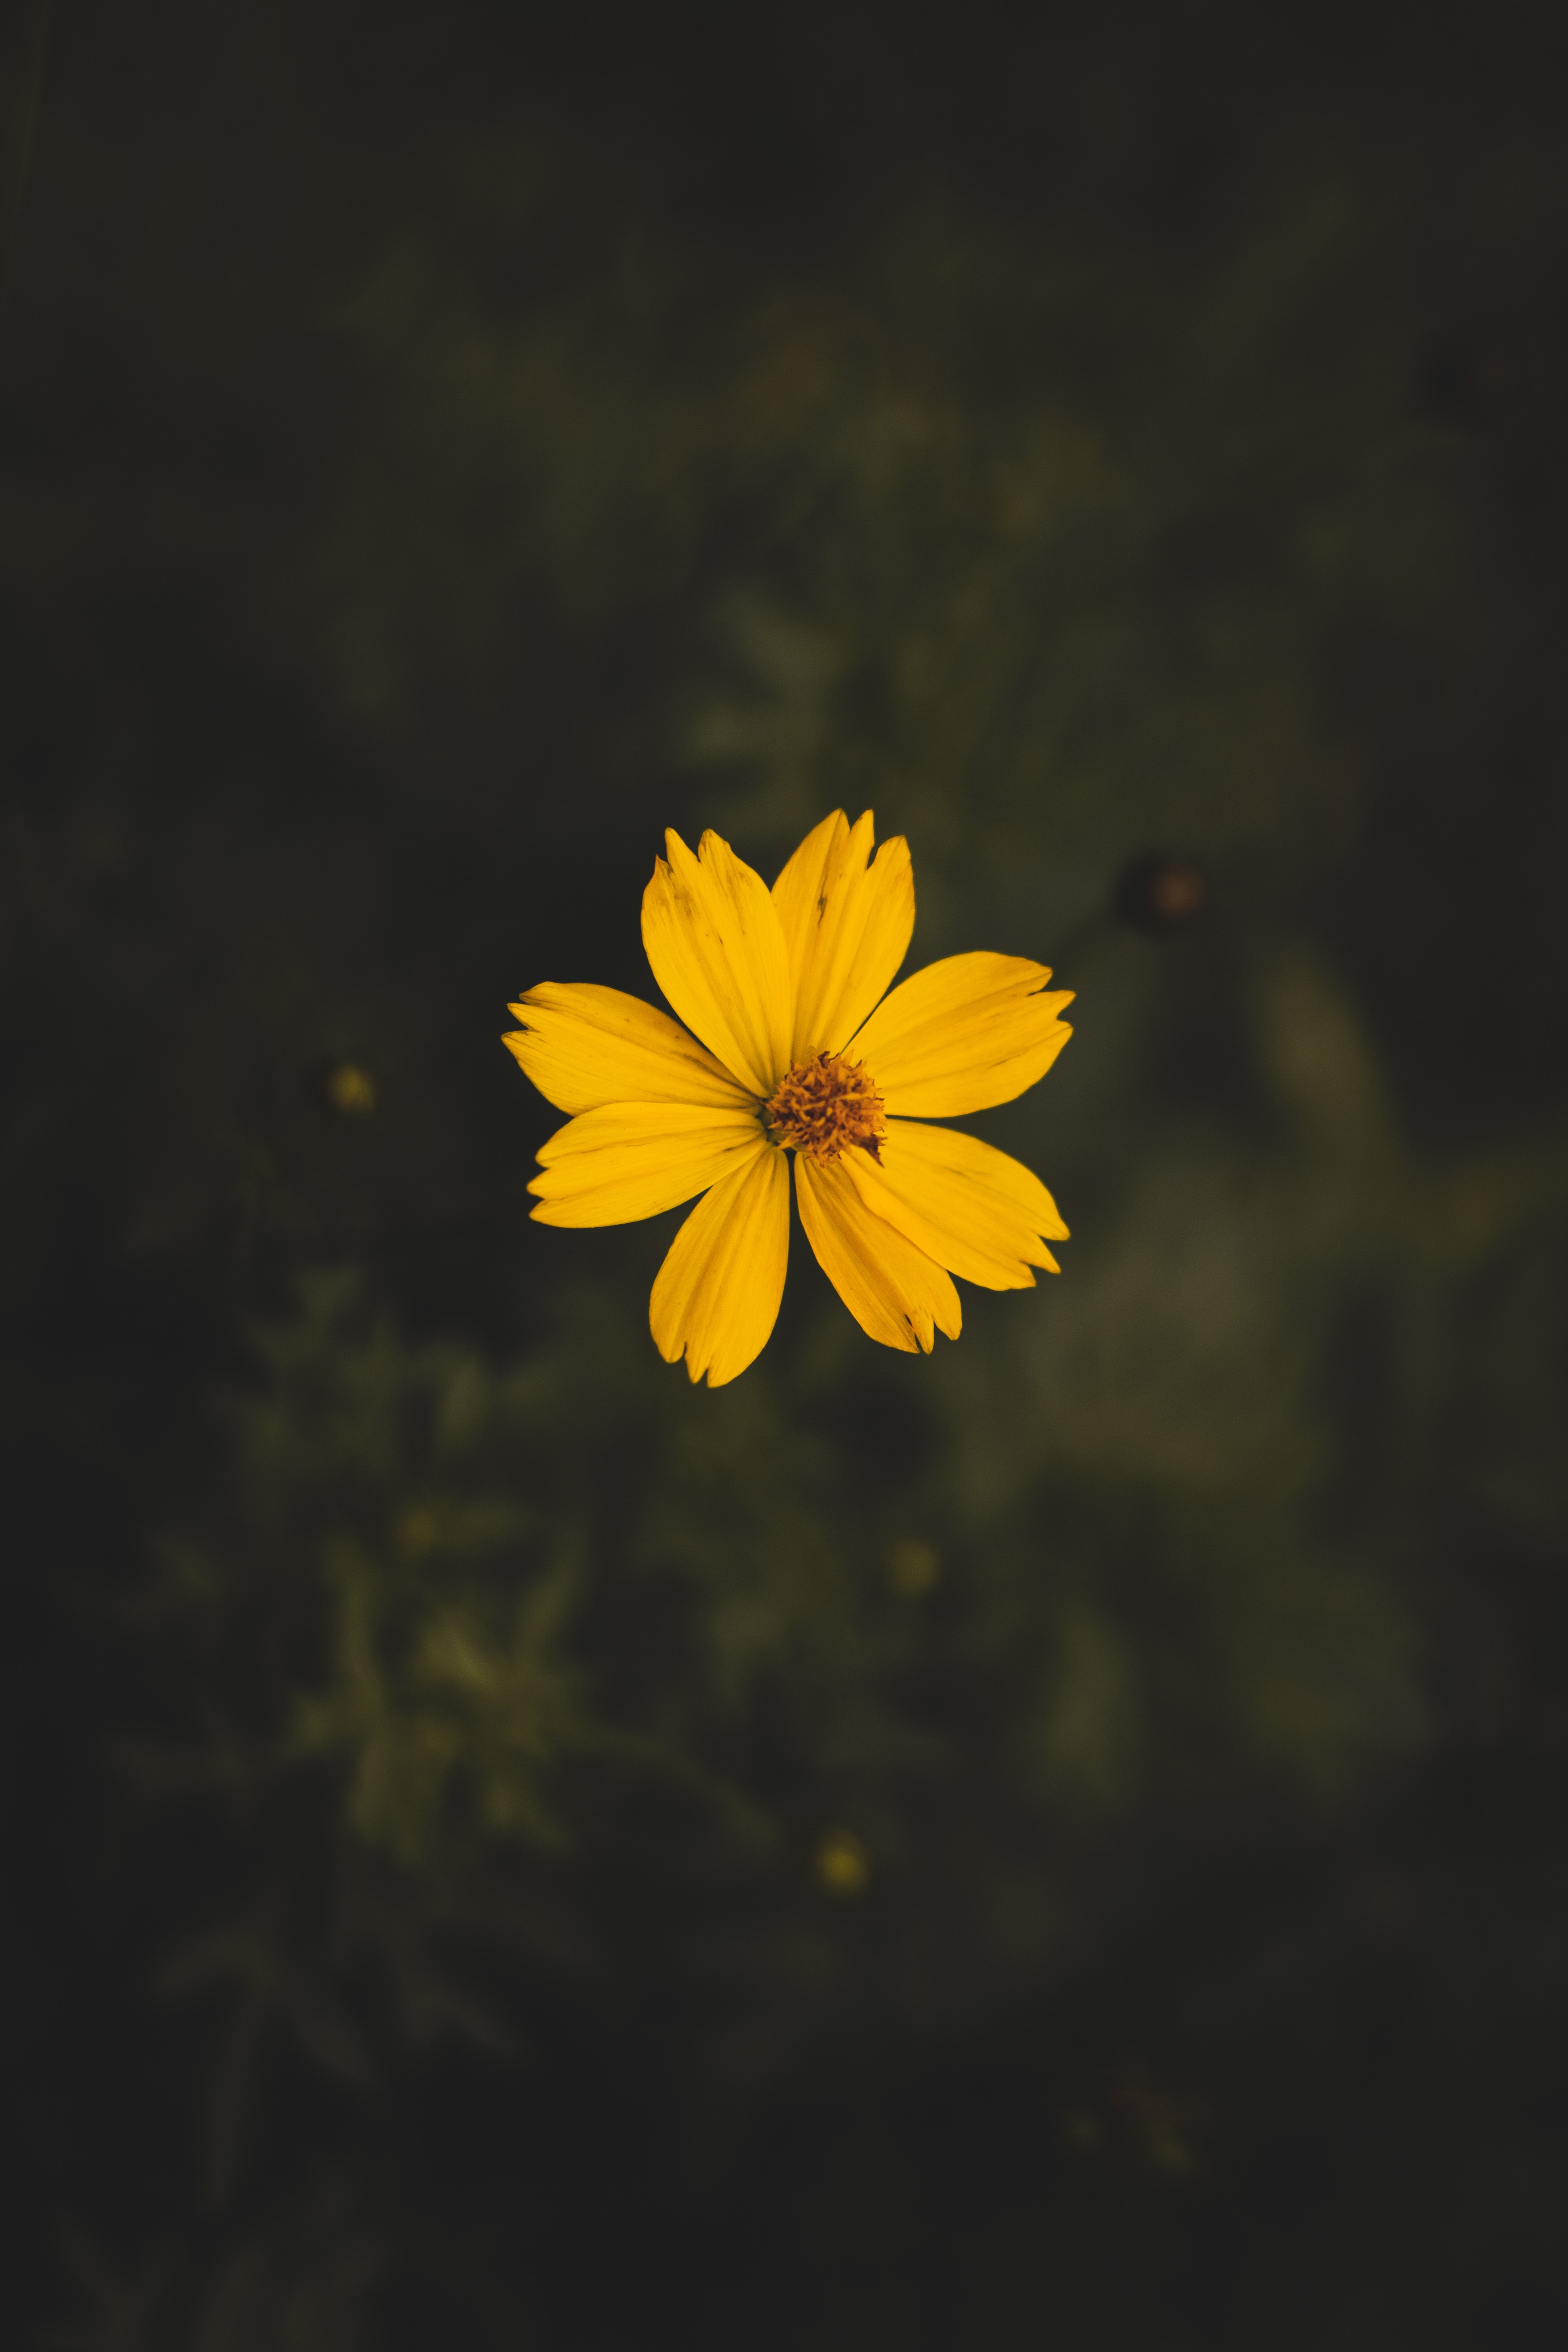 Flower images · · Free Stock